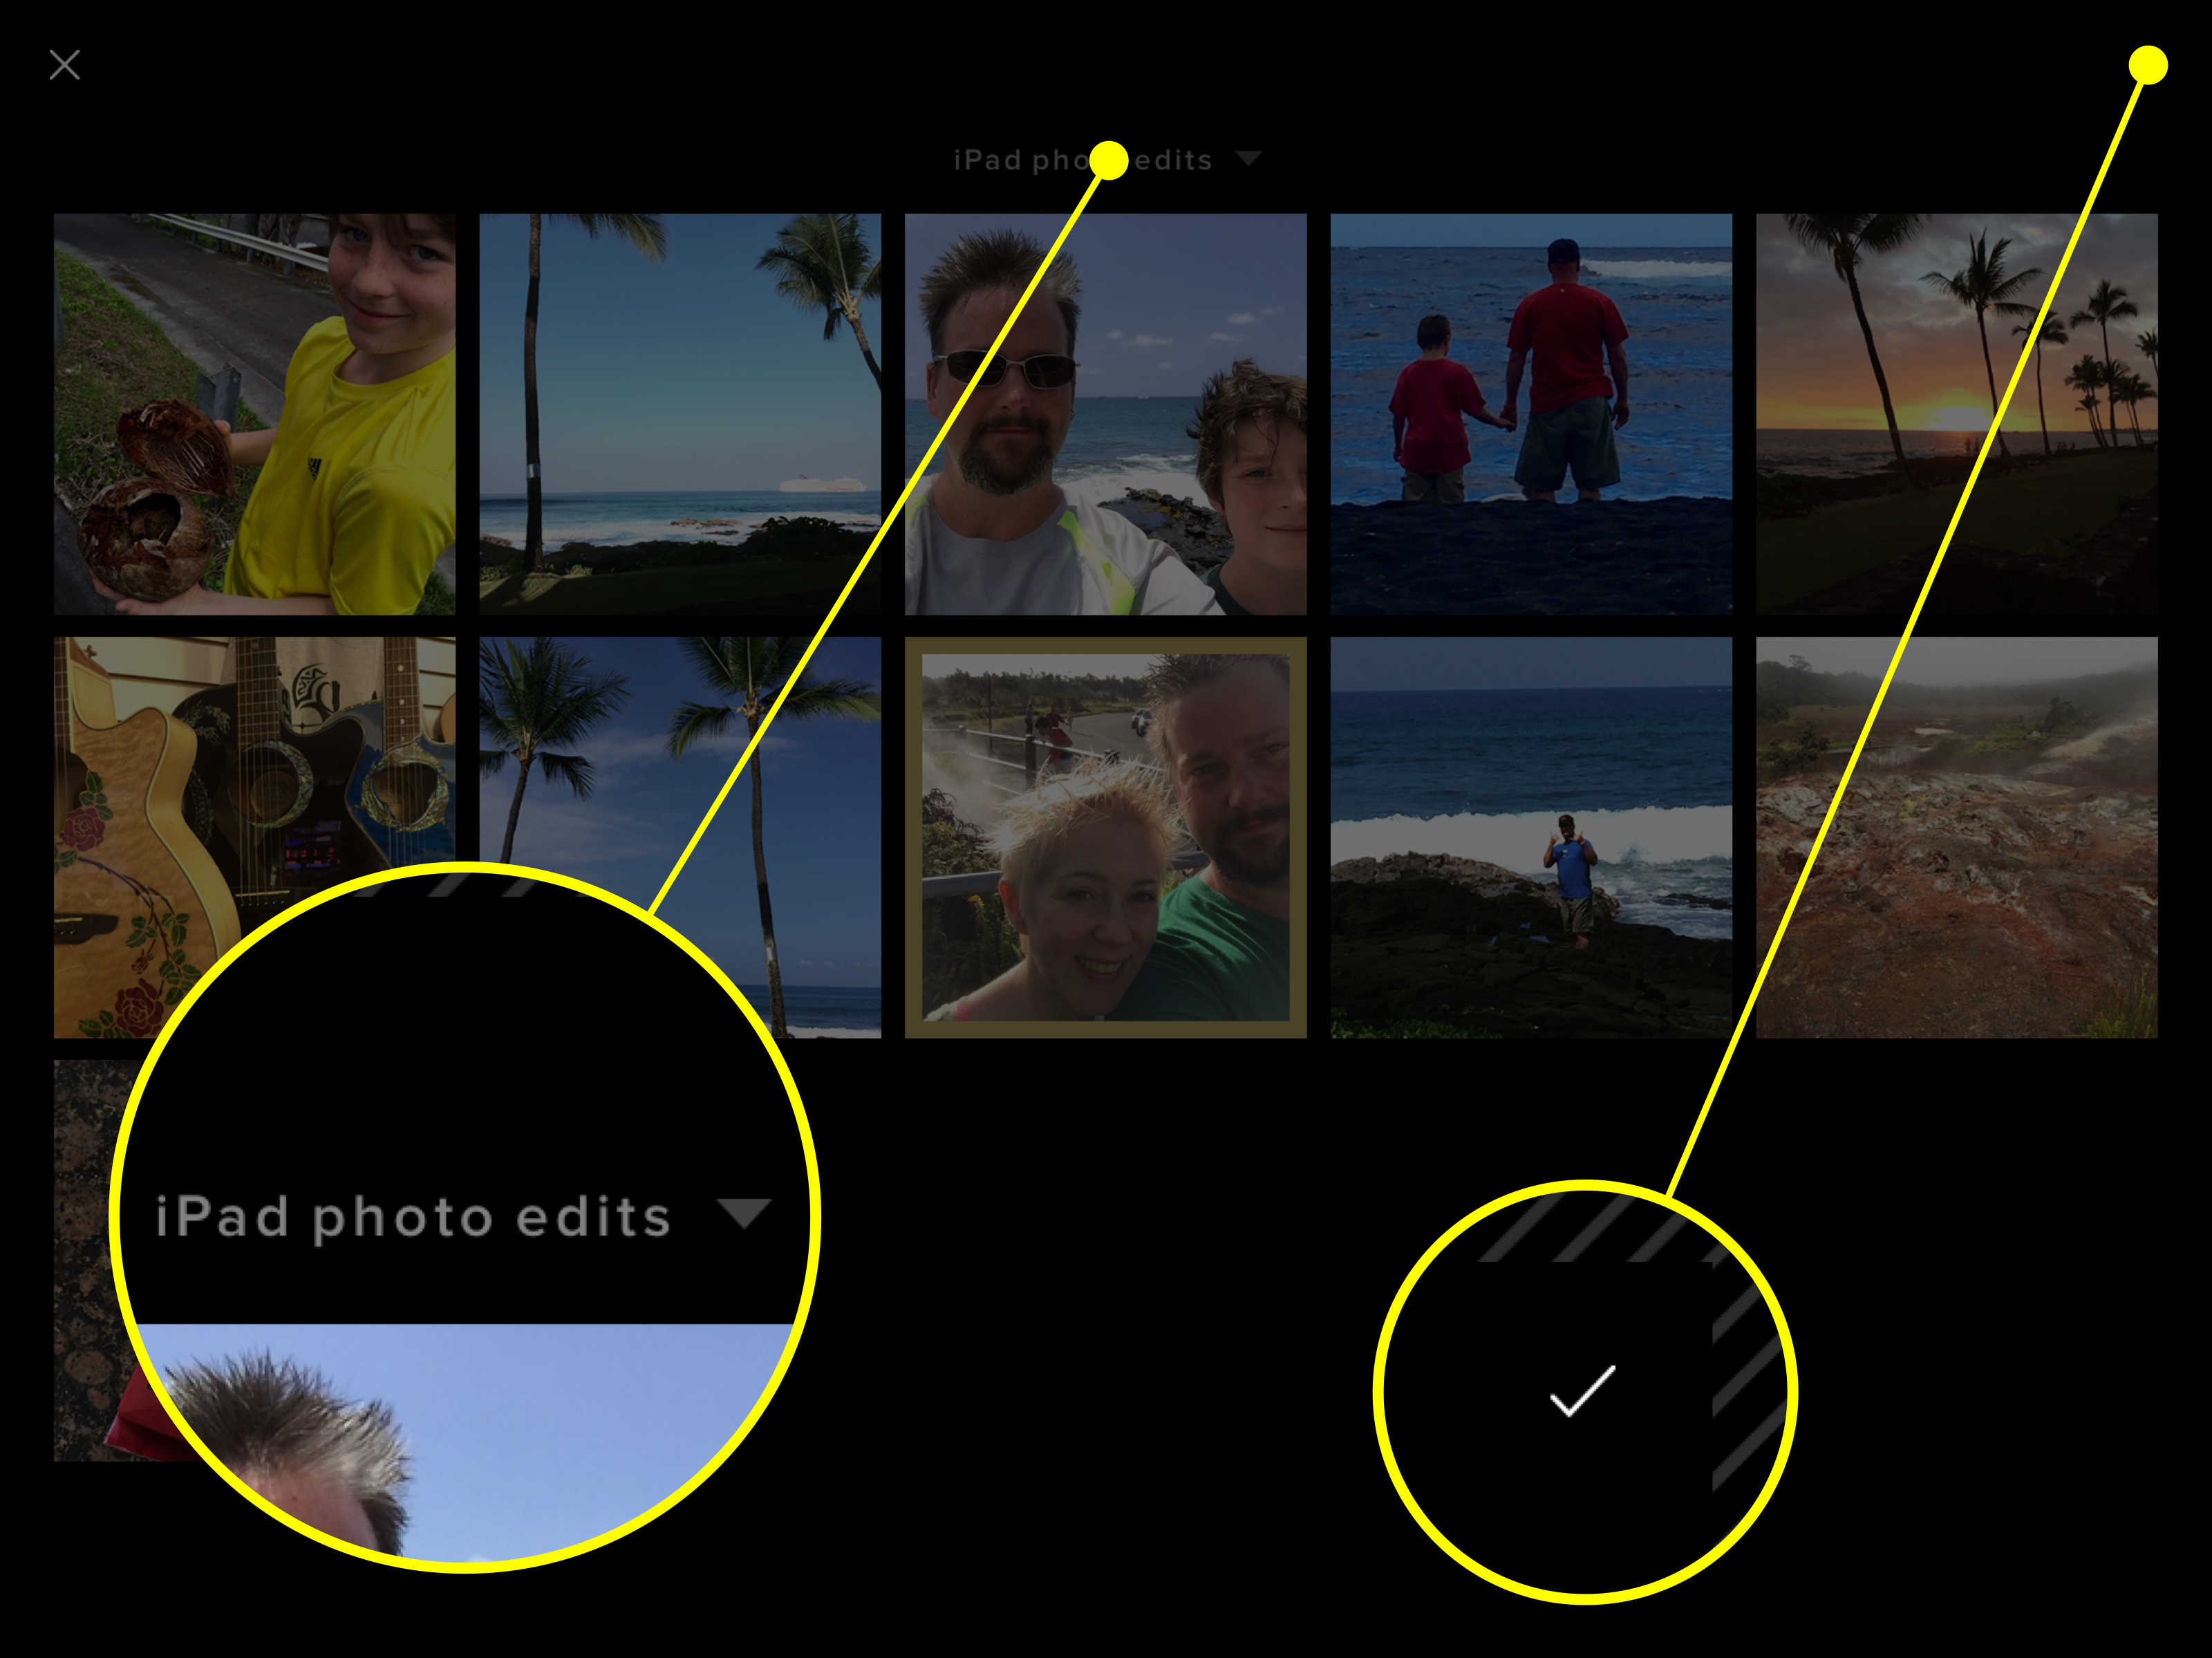 Tap On The All Photos Menu At The Top Of The Screen To Choose A Specific  Album Finally, Tap On The Photo You Want To Import To Vsco, Then Tap The  Checkmark